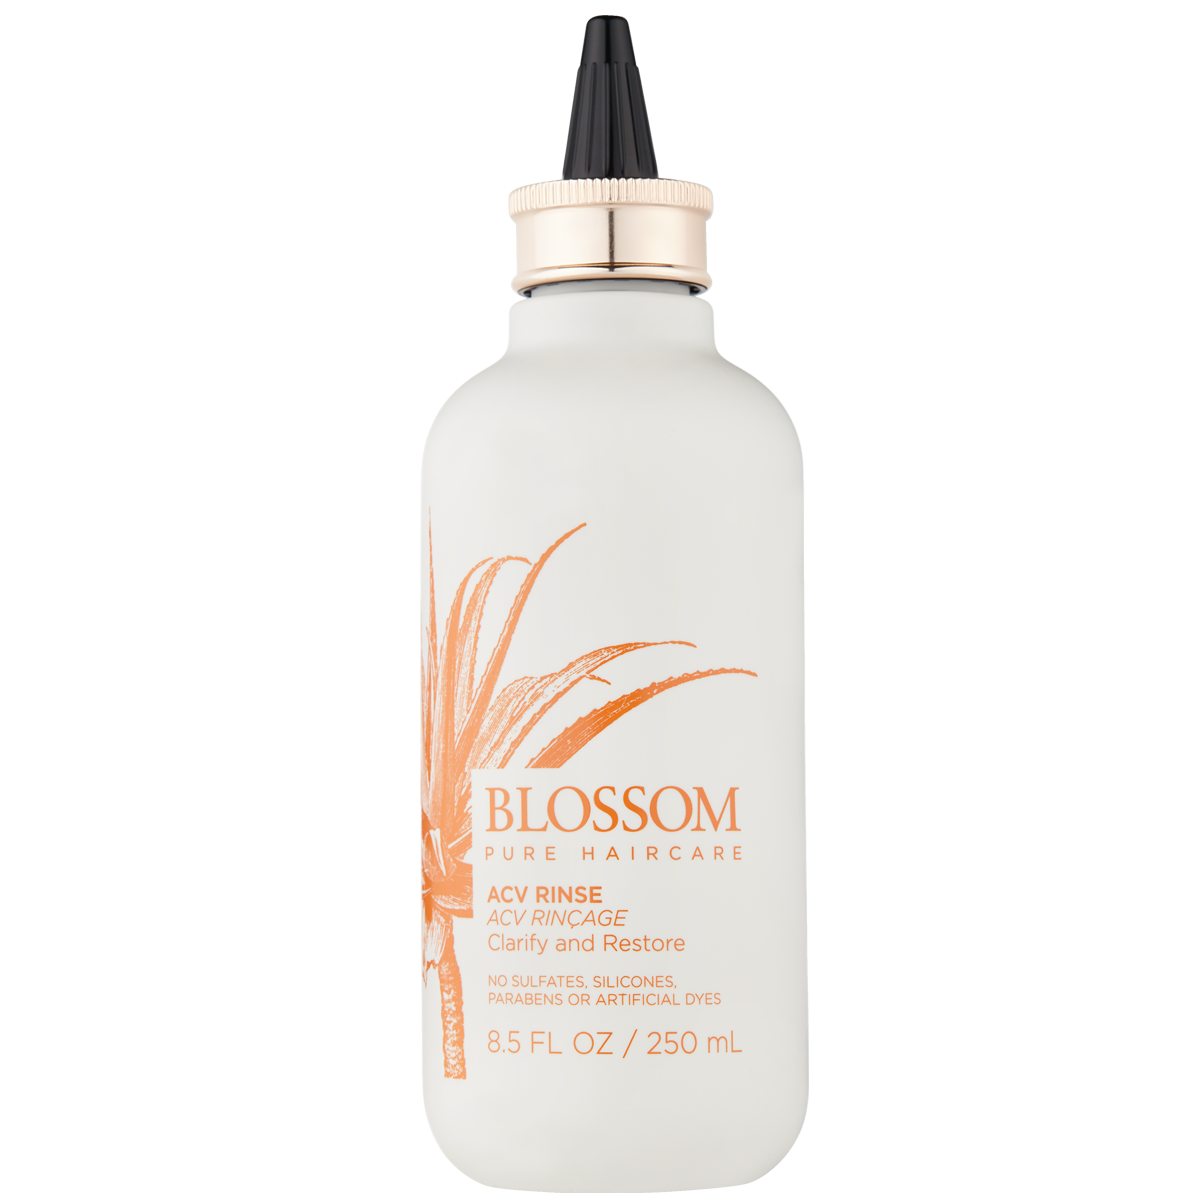 Blossom Pure Haircare ACV Rinse